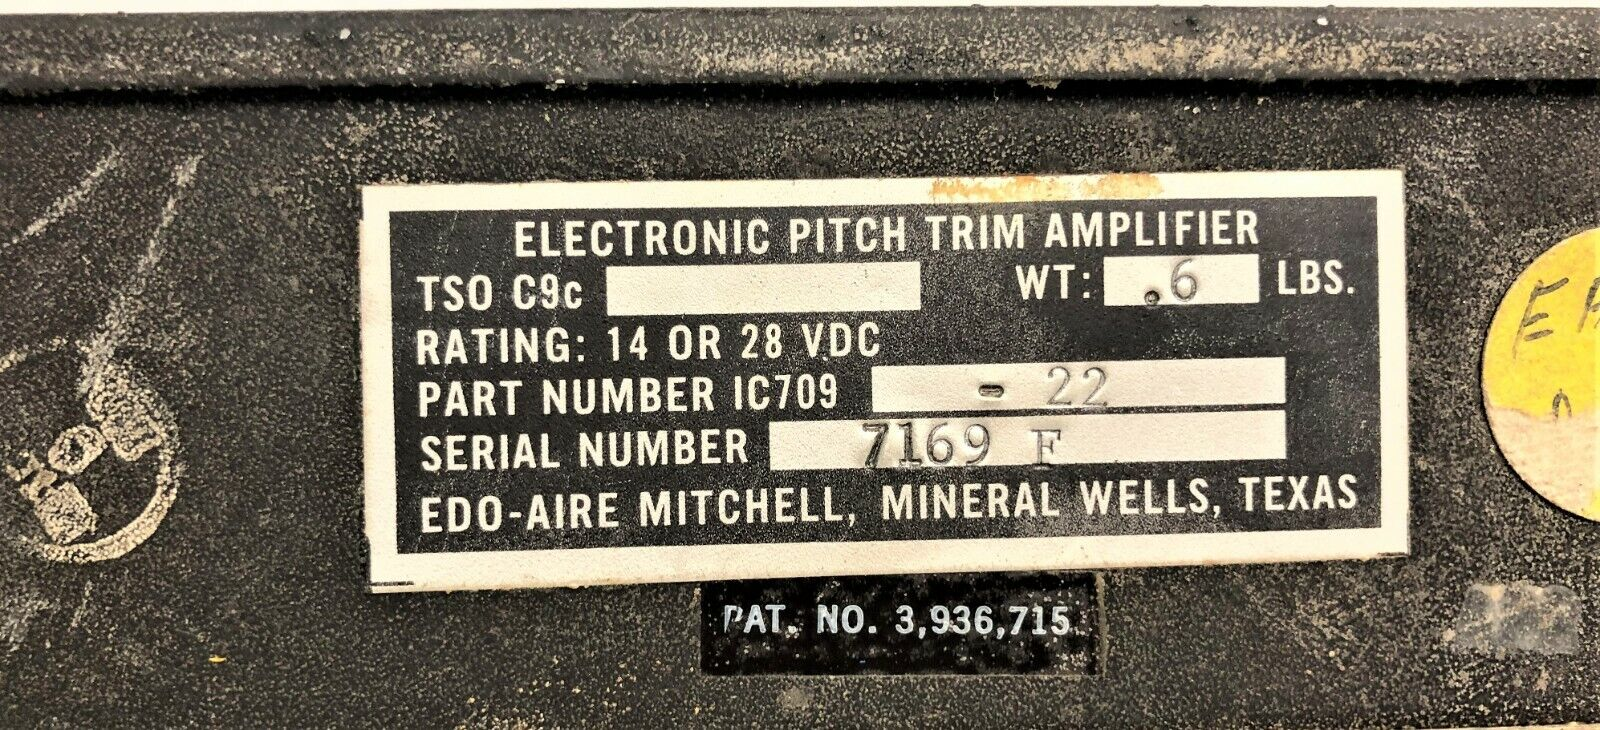 EDO-AIRE MITCHELL ELECTRONIC PITCH TRIM AMPLIFIER P/N IC709-22